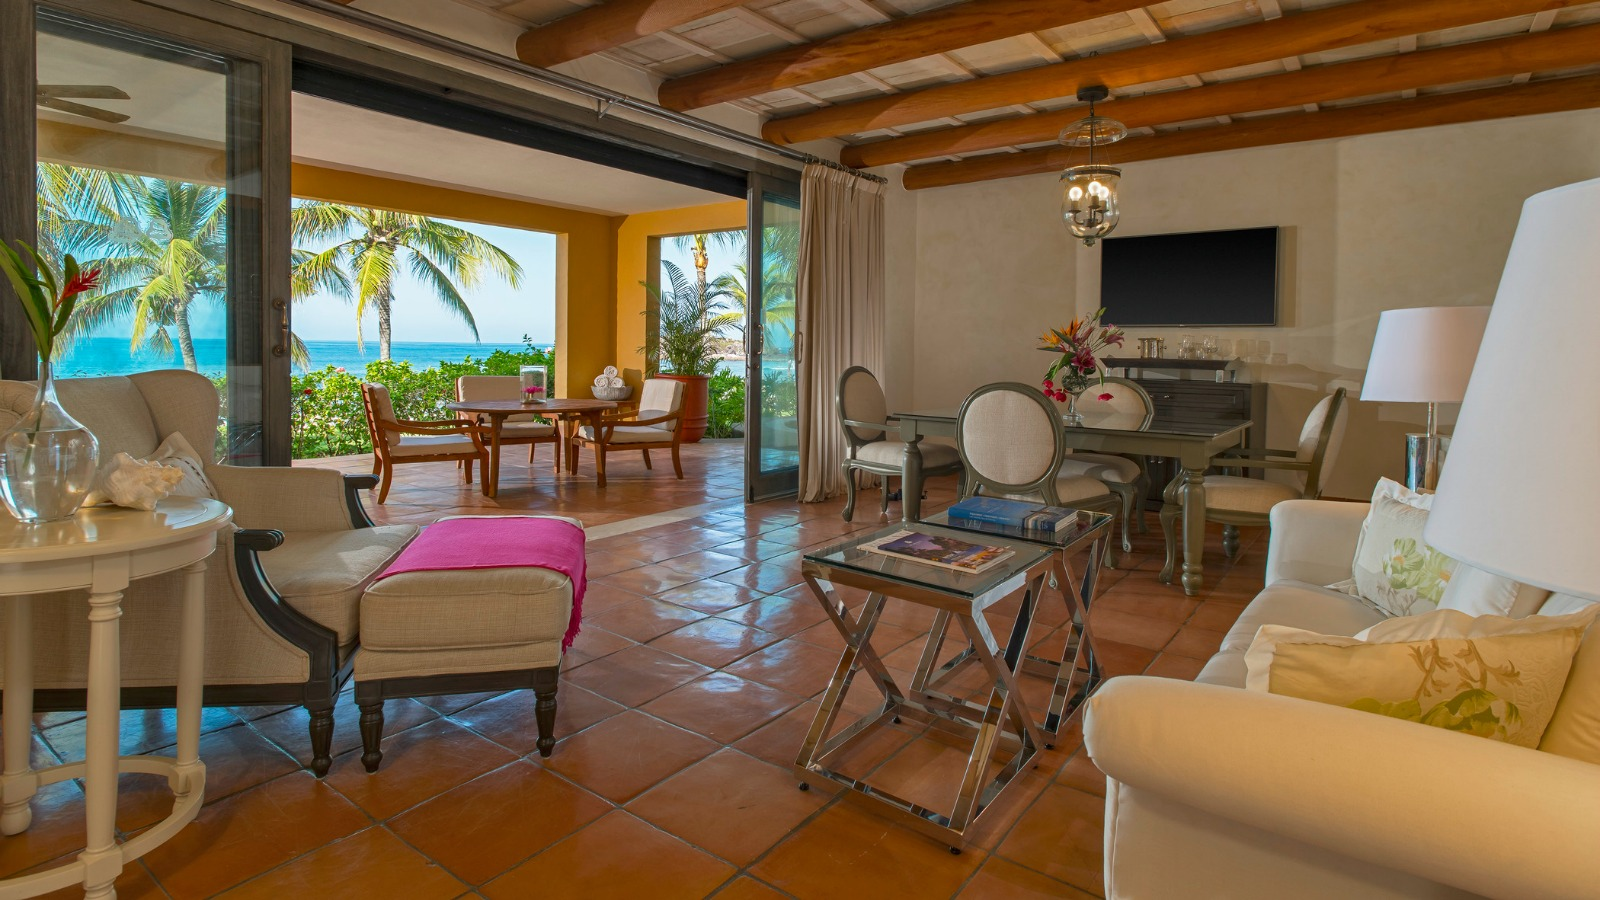 Deluxe Suites - The St. Regis Punta Mita